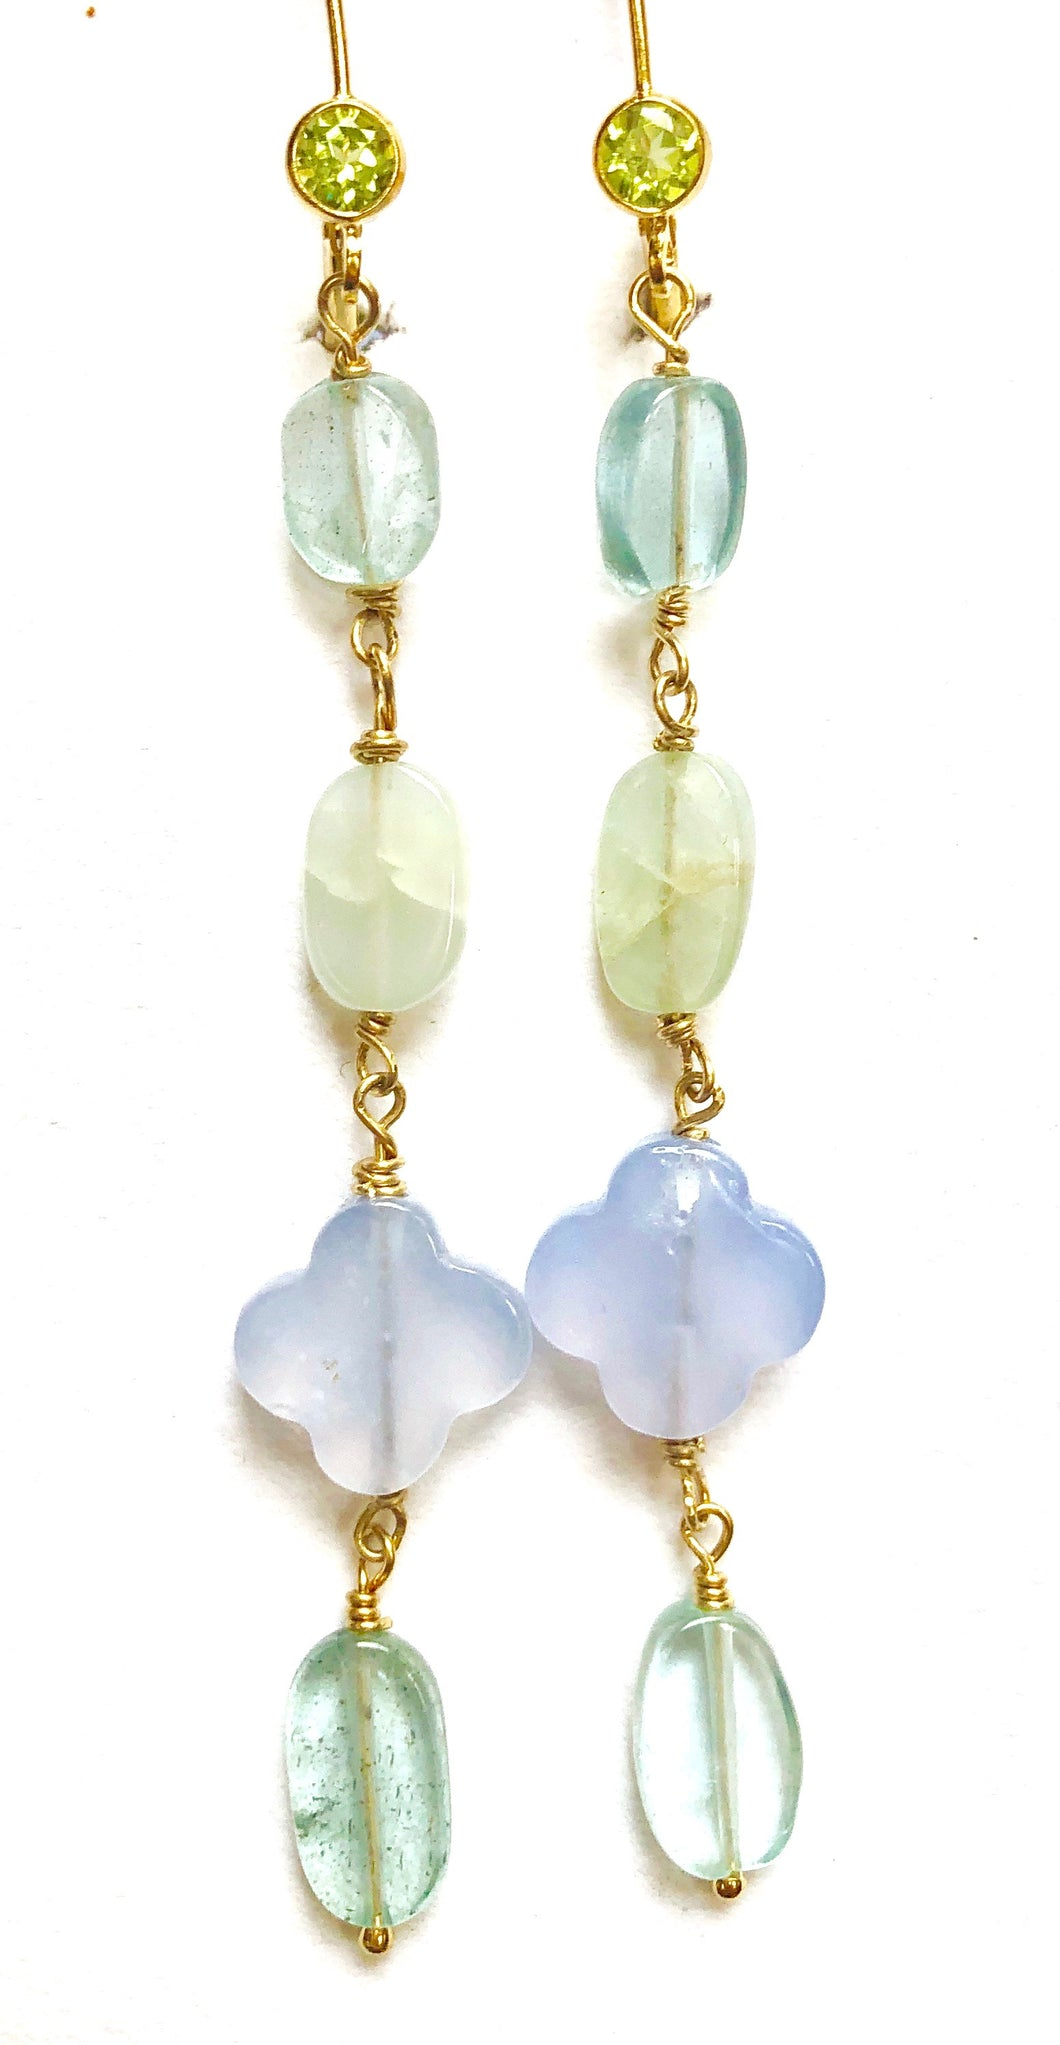 Lively Blue Lace Agate, Moonstone, Violet & Pink Quartz Drop Earrings